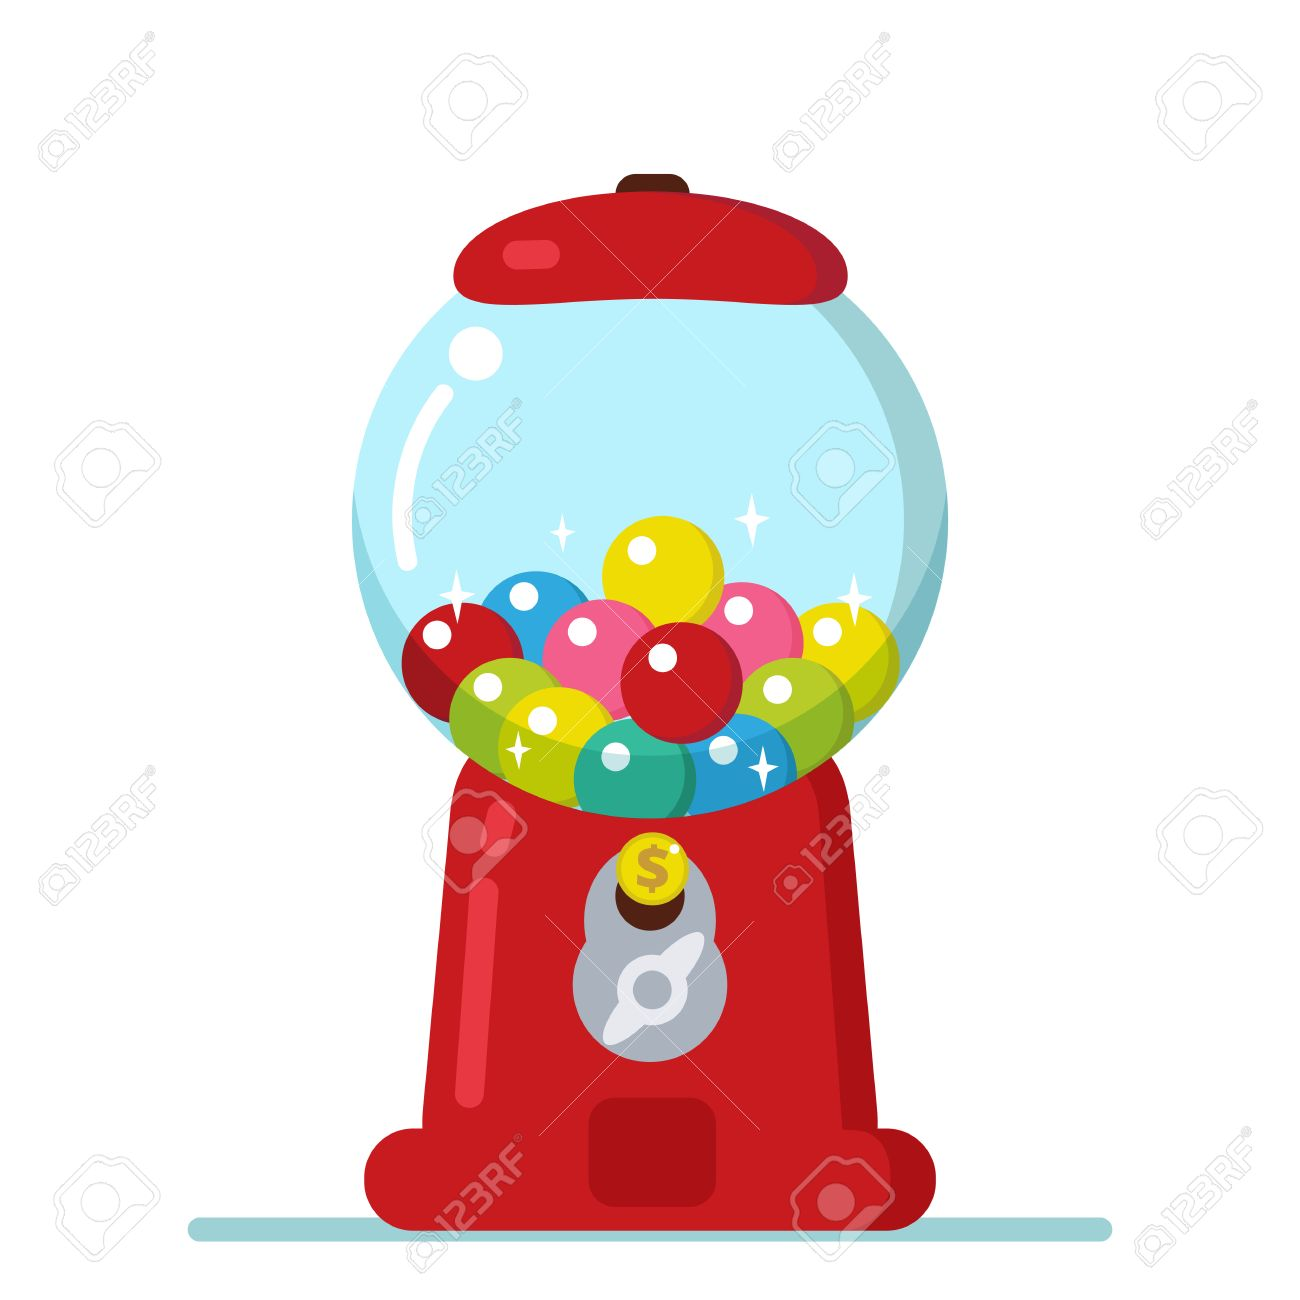 vector gumball machine illustration bubble gum machine in cartoon rh 123rf com machine a bubble gum clipart Bubble Gum Graphics